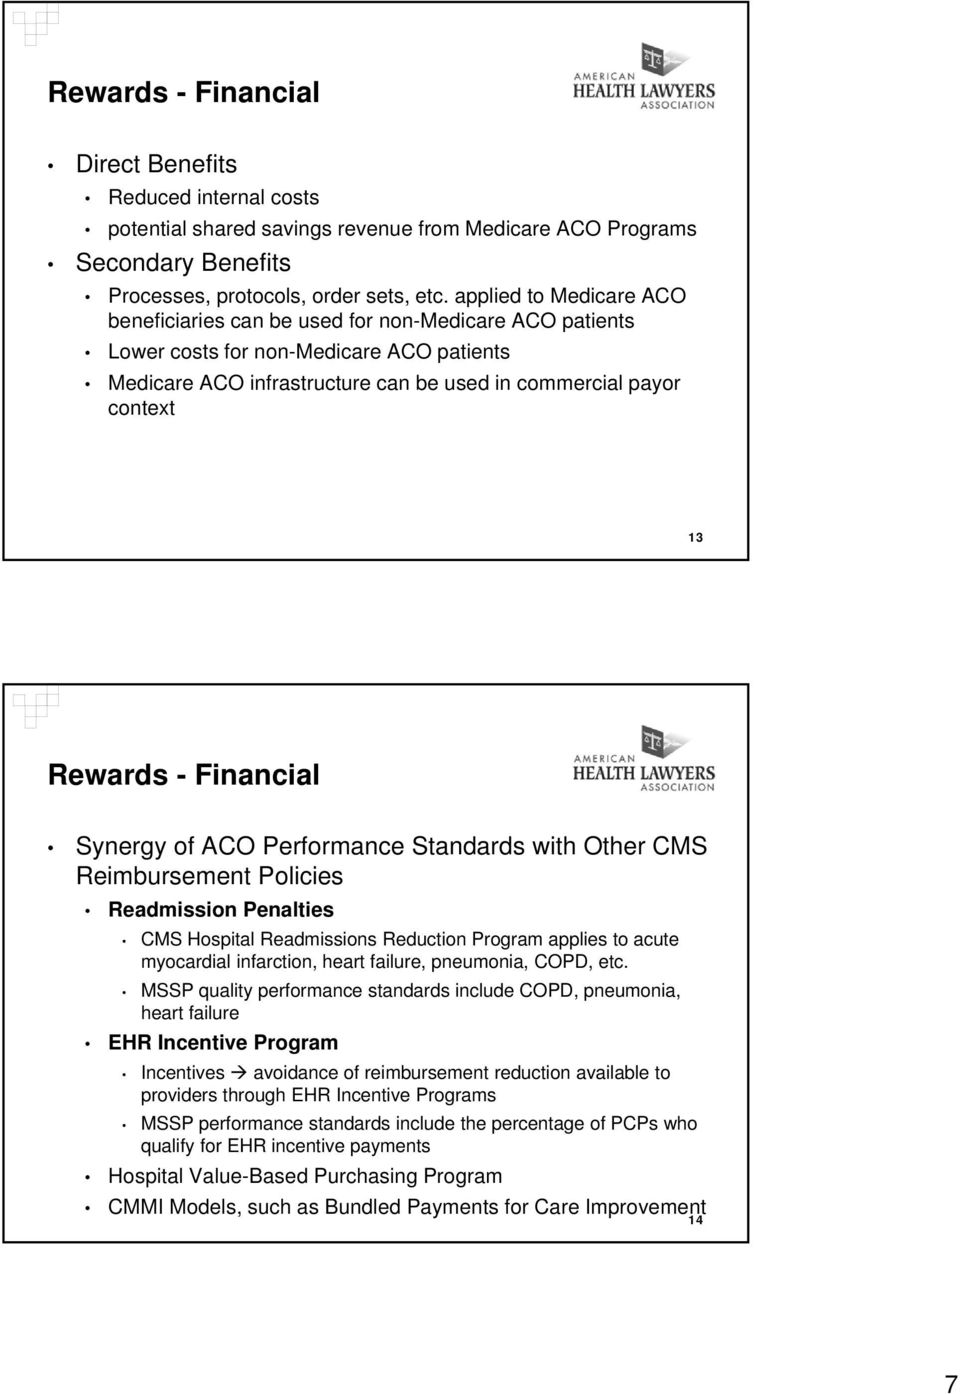 Rewards - Financial Synergy of ACO Performance Standards with Other CMS Reimbursement Policies Readmission Penalties CMS Hospital Readmissions Reduction Program applies to acute myocardial